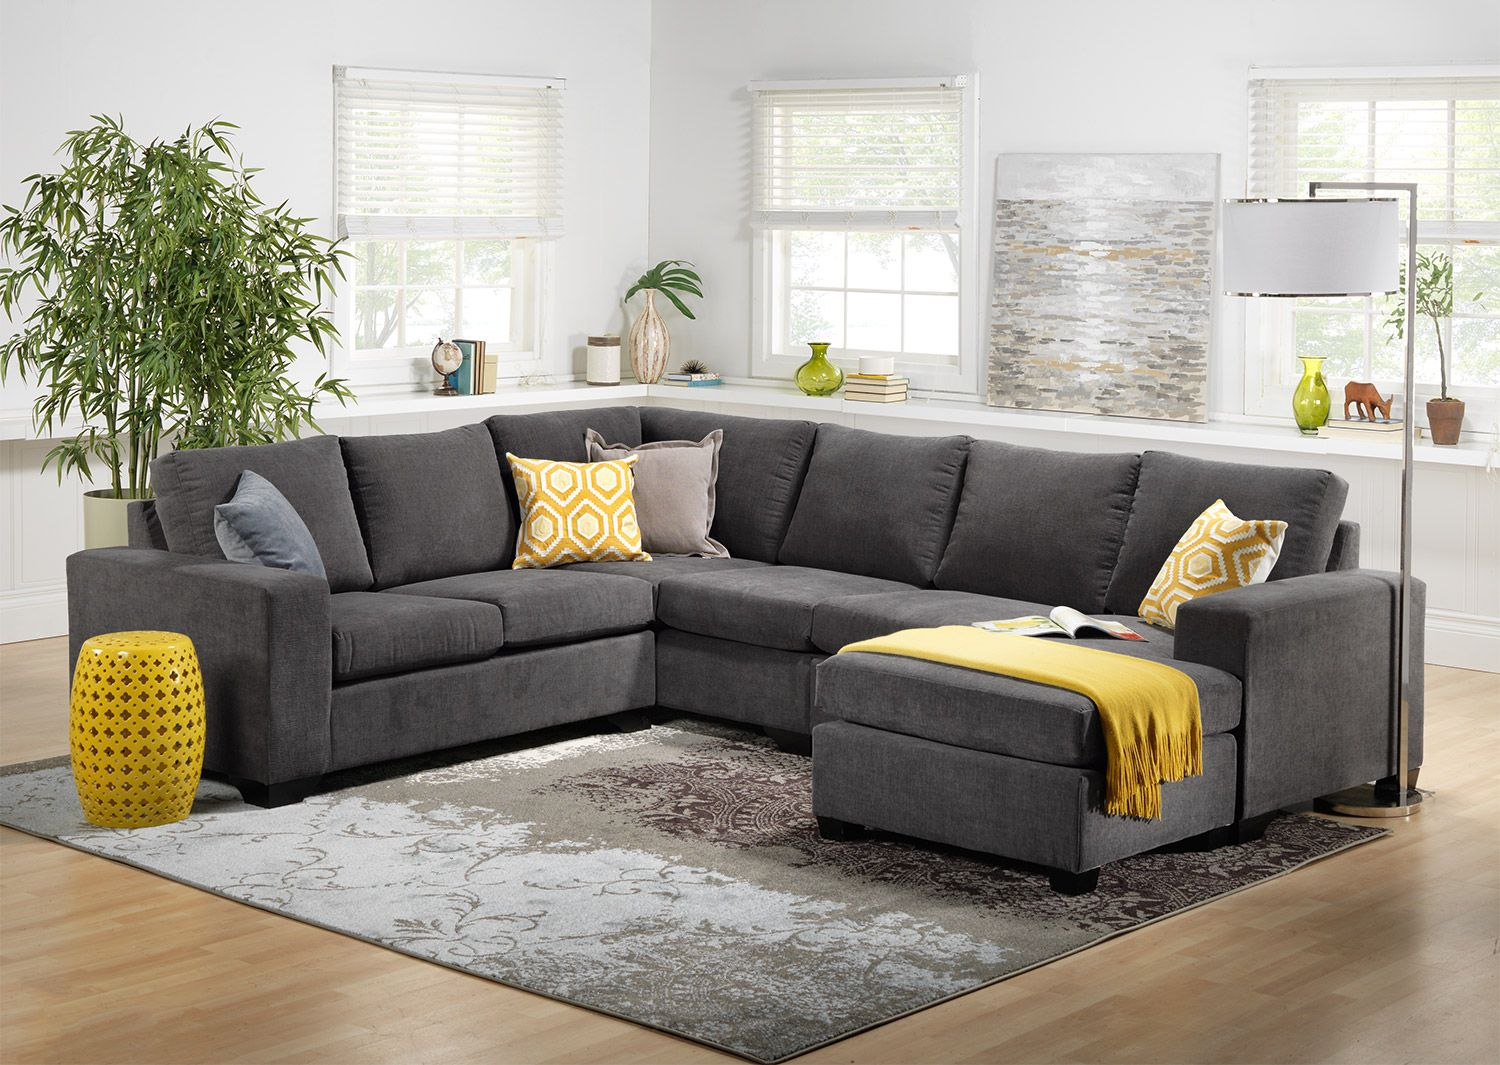 Top 25 Best U Shaped Sofa Ideas On Pinterest